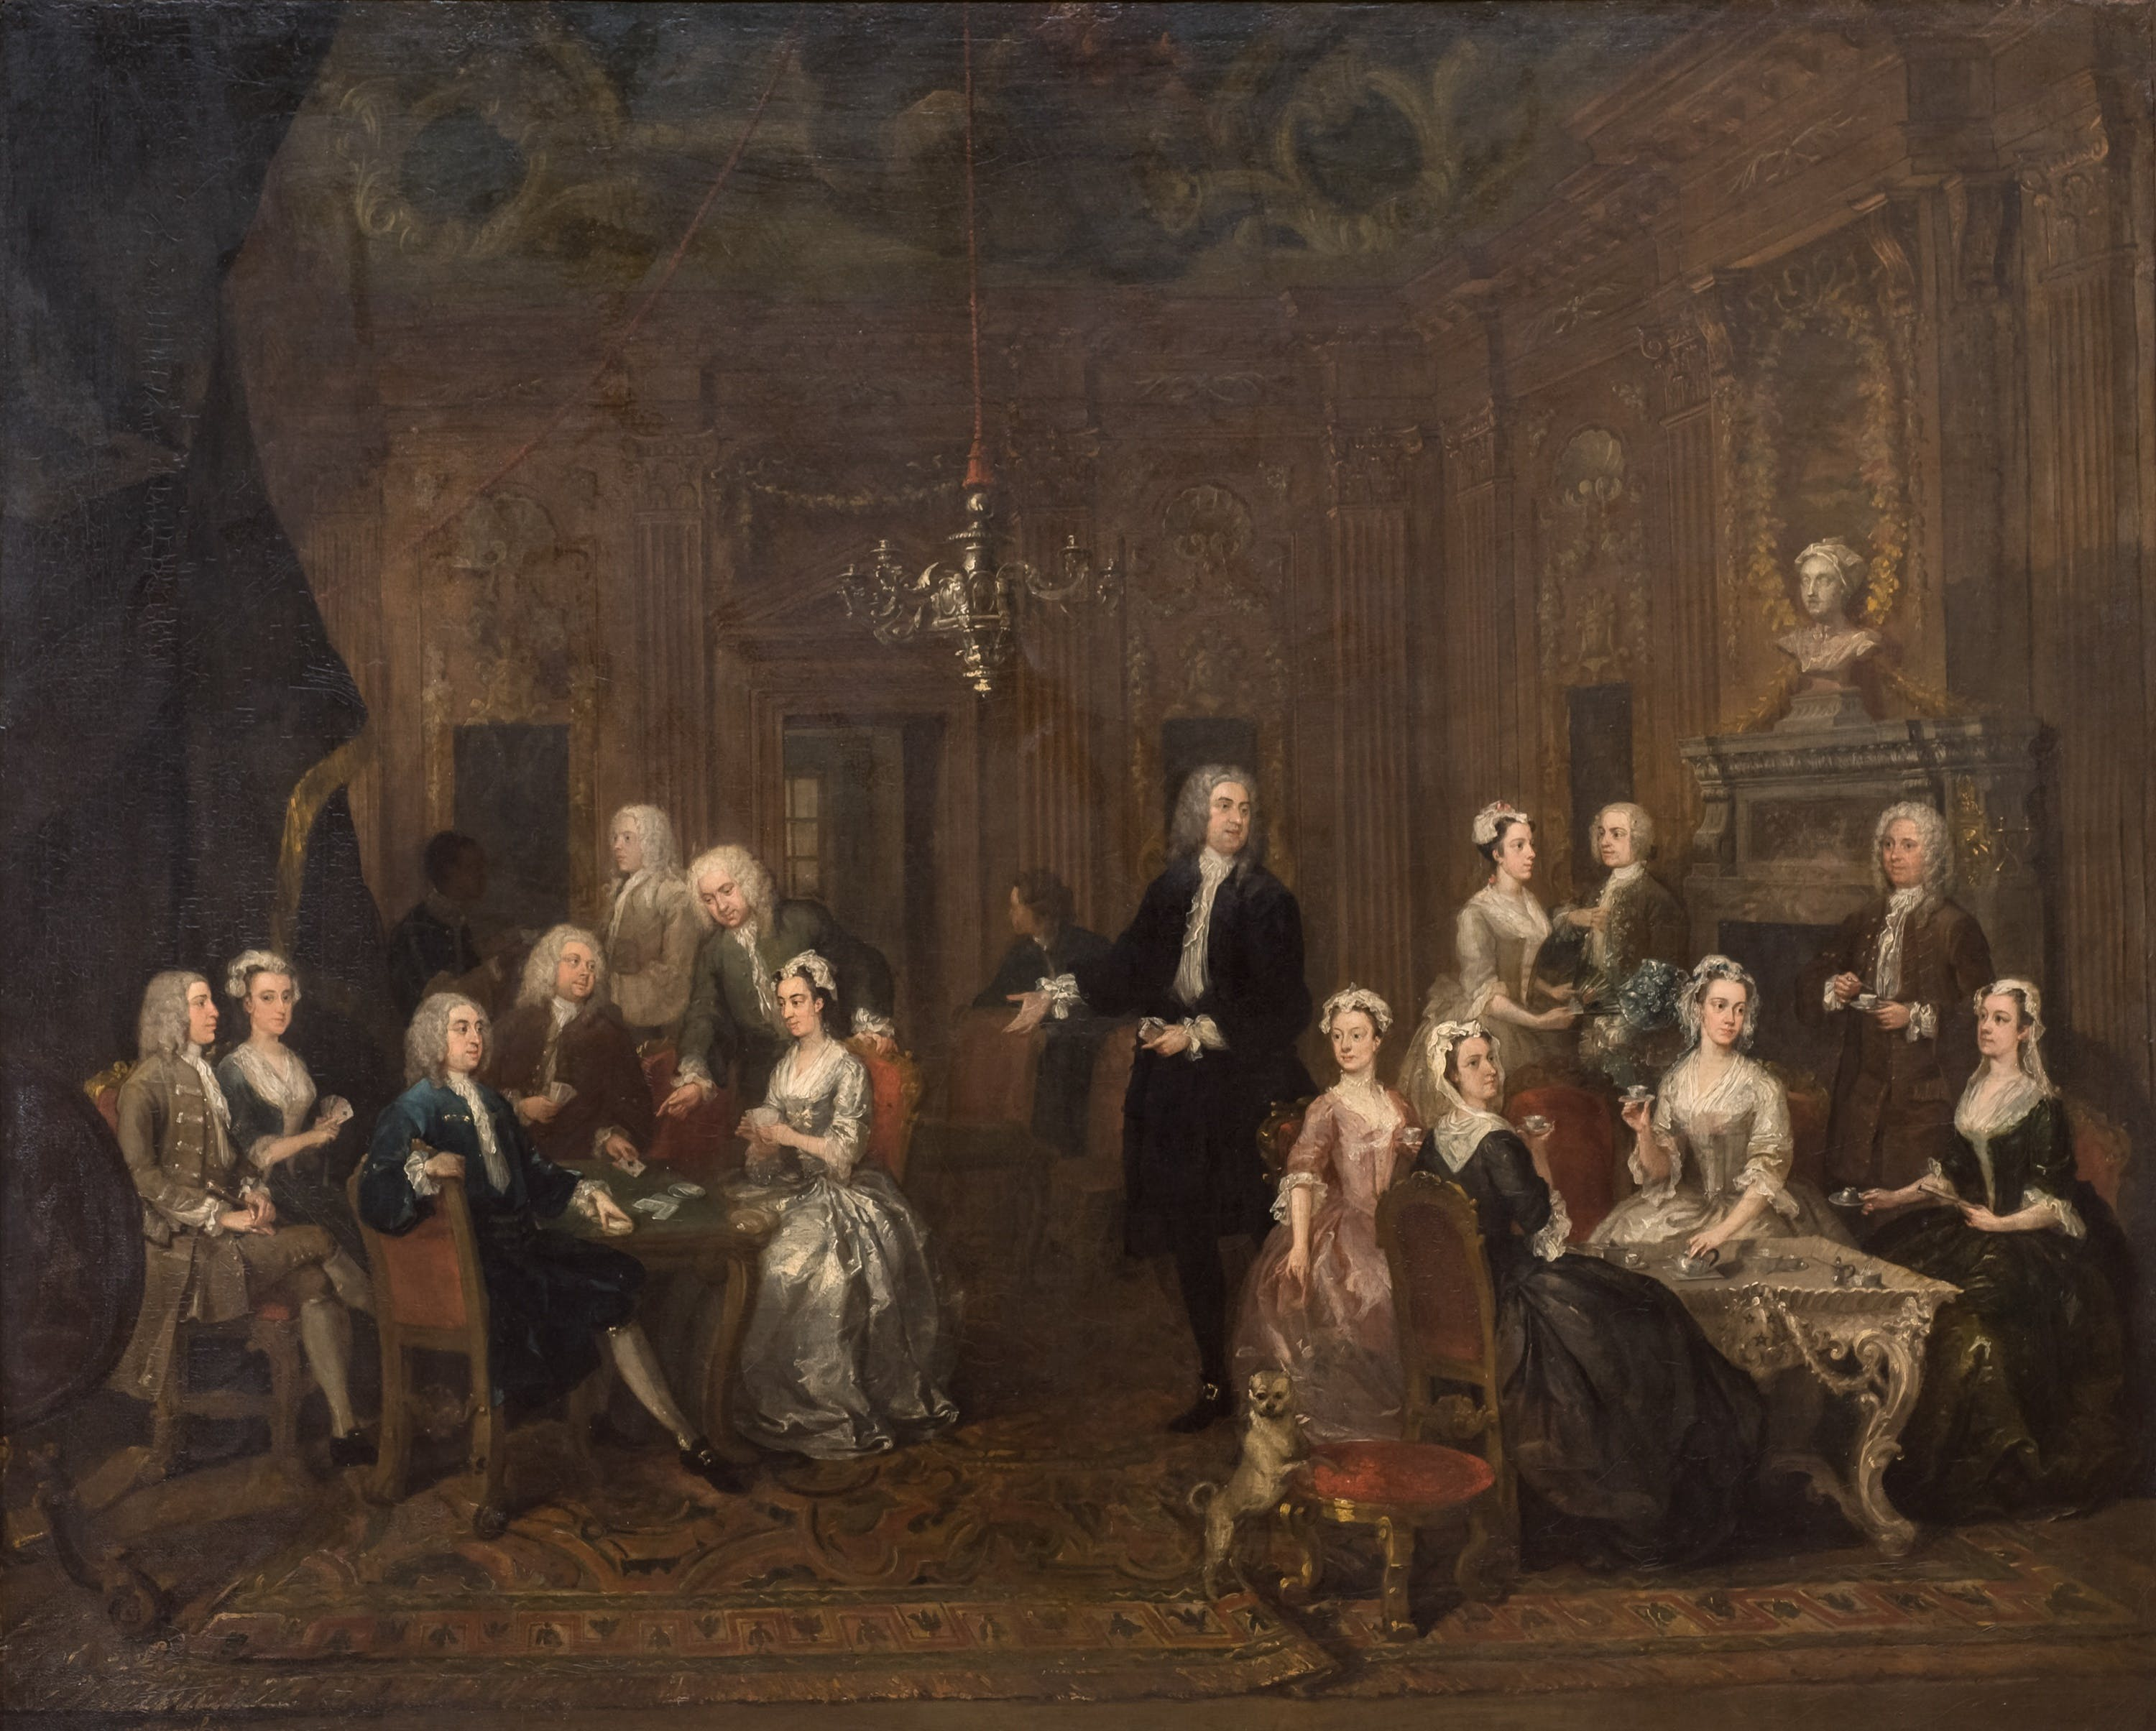 William Wollaston and his Family (1730), William Hogarth.